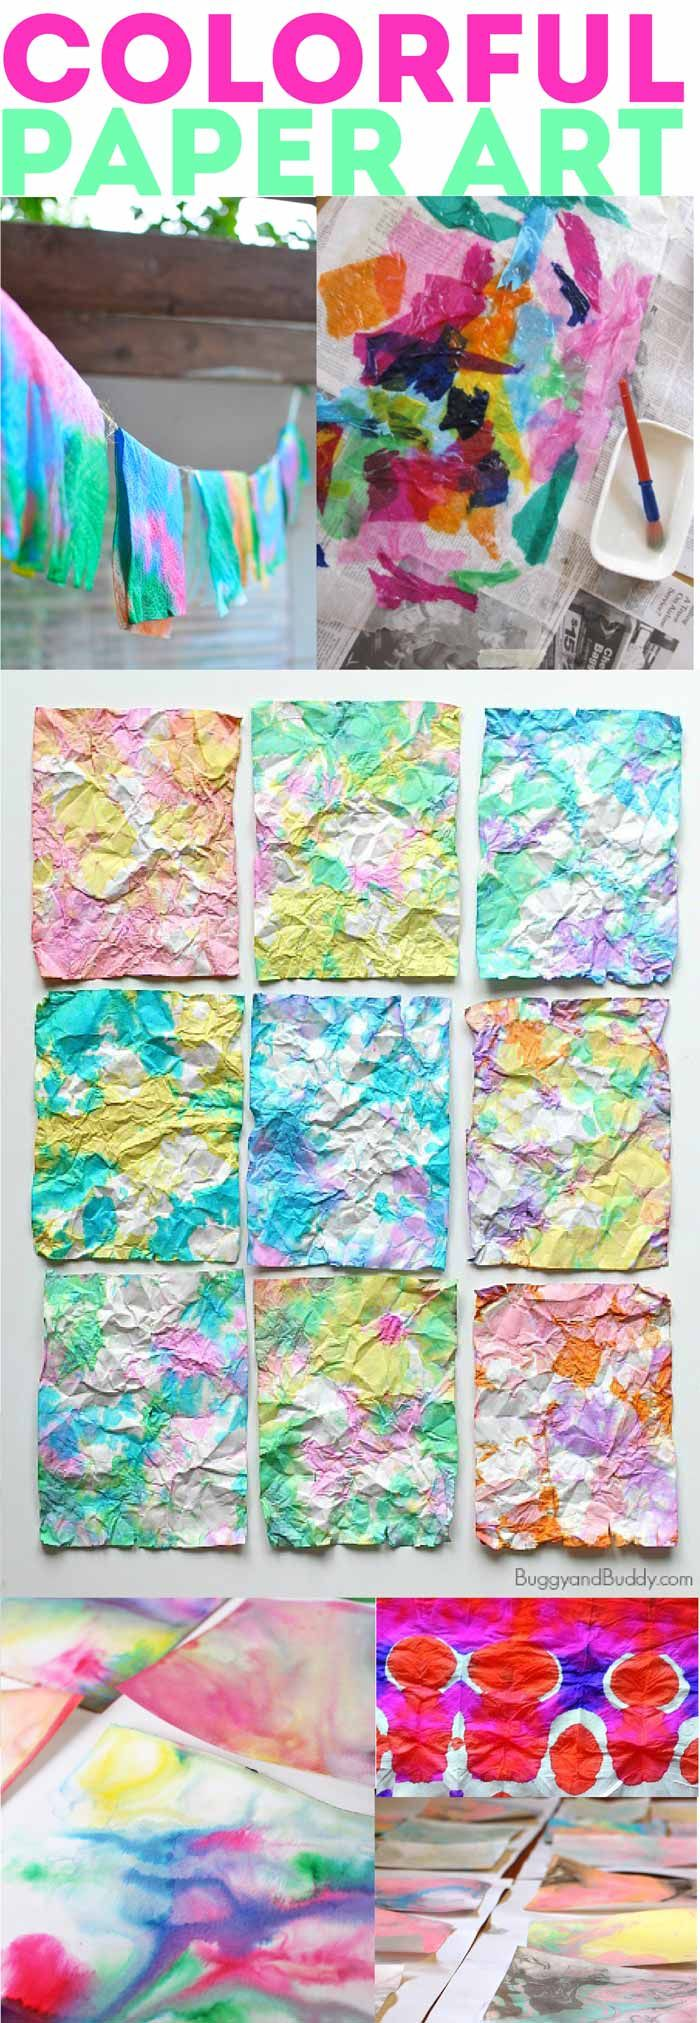 39++ Fun art crafts for adults information